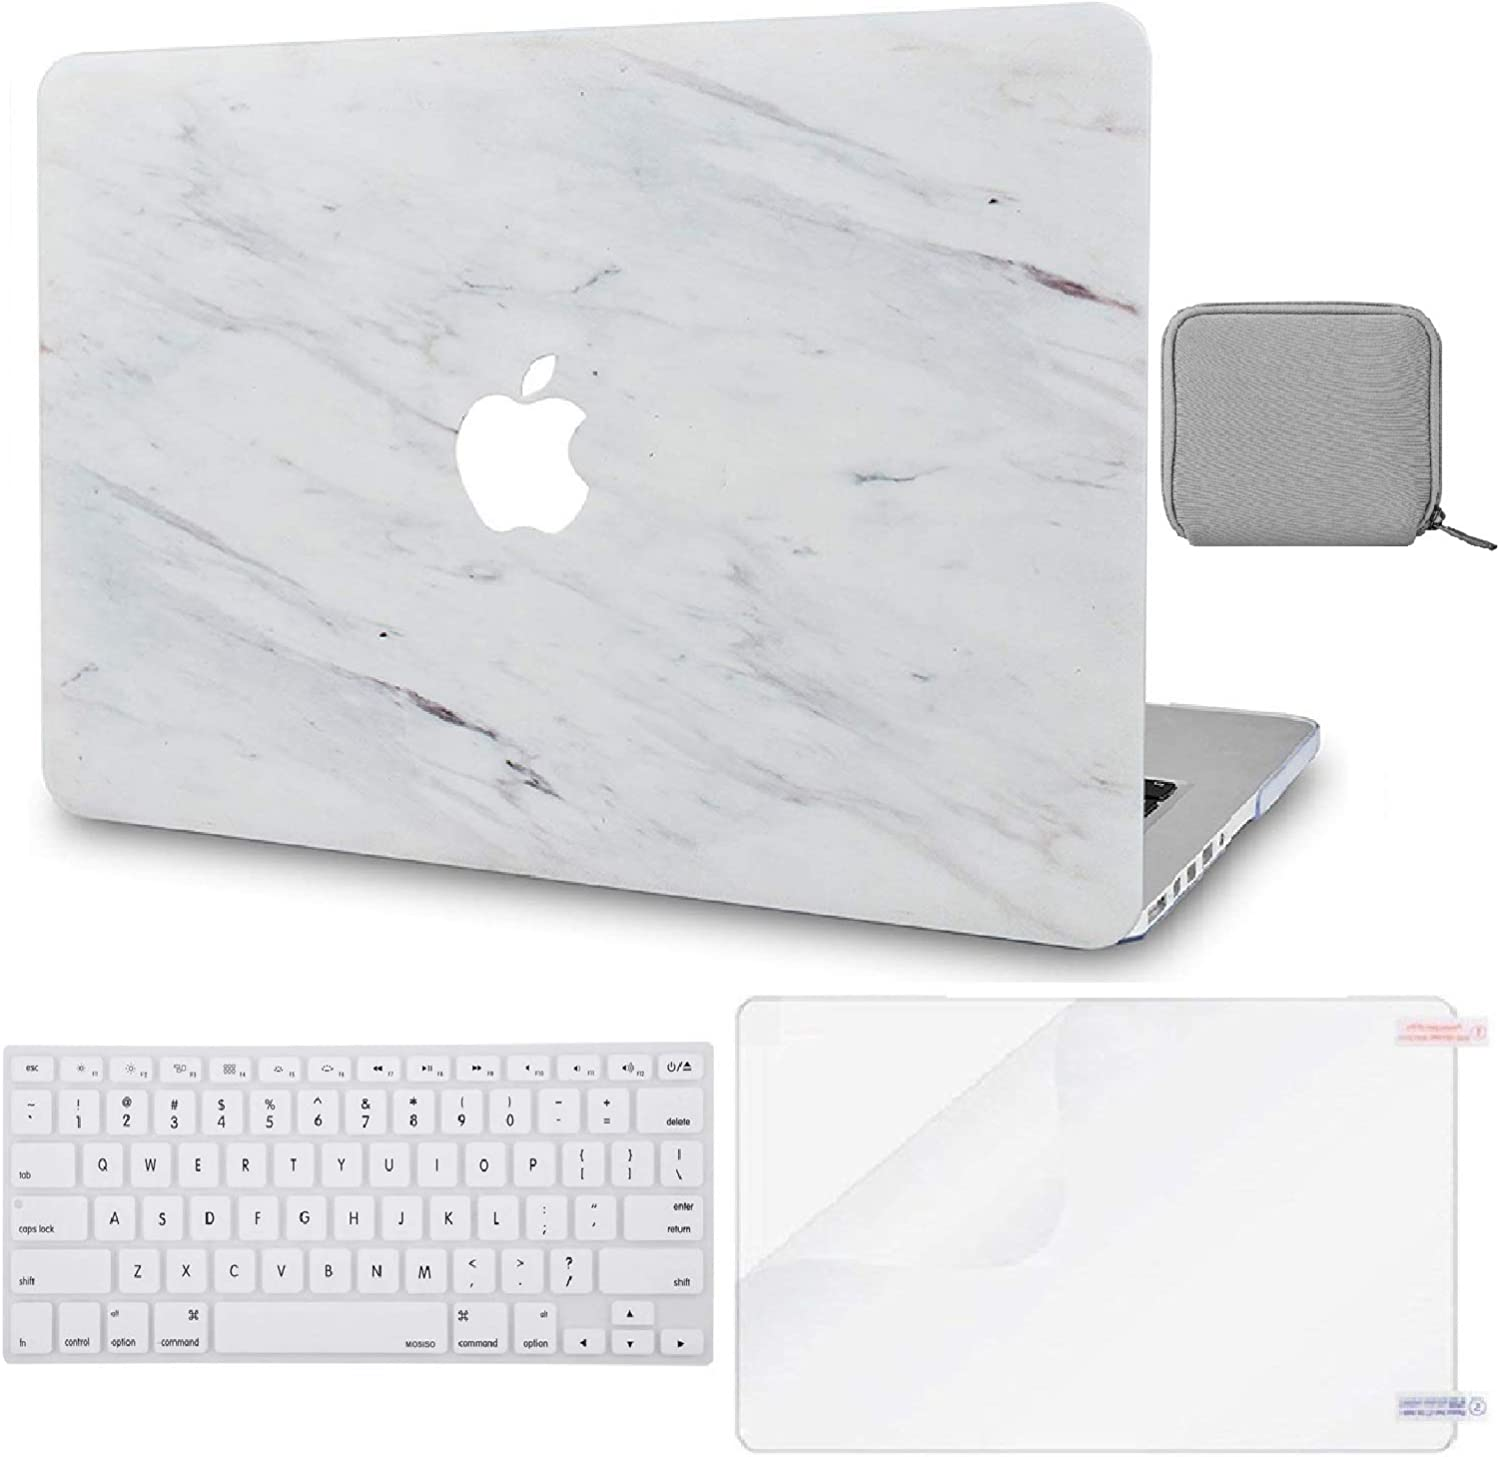 "LuvCase 4 in 1 Laptop Case for Old MacBook Pro 13"" Retina Display (2015/2014/2013/2012) A1502/A1425 Hard Shell Cover, Pouch, Keyboard Cover & Screen Protector (Silk White Marble)"